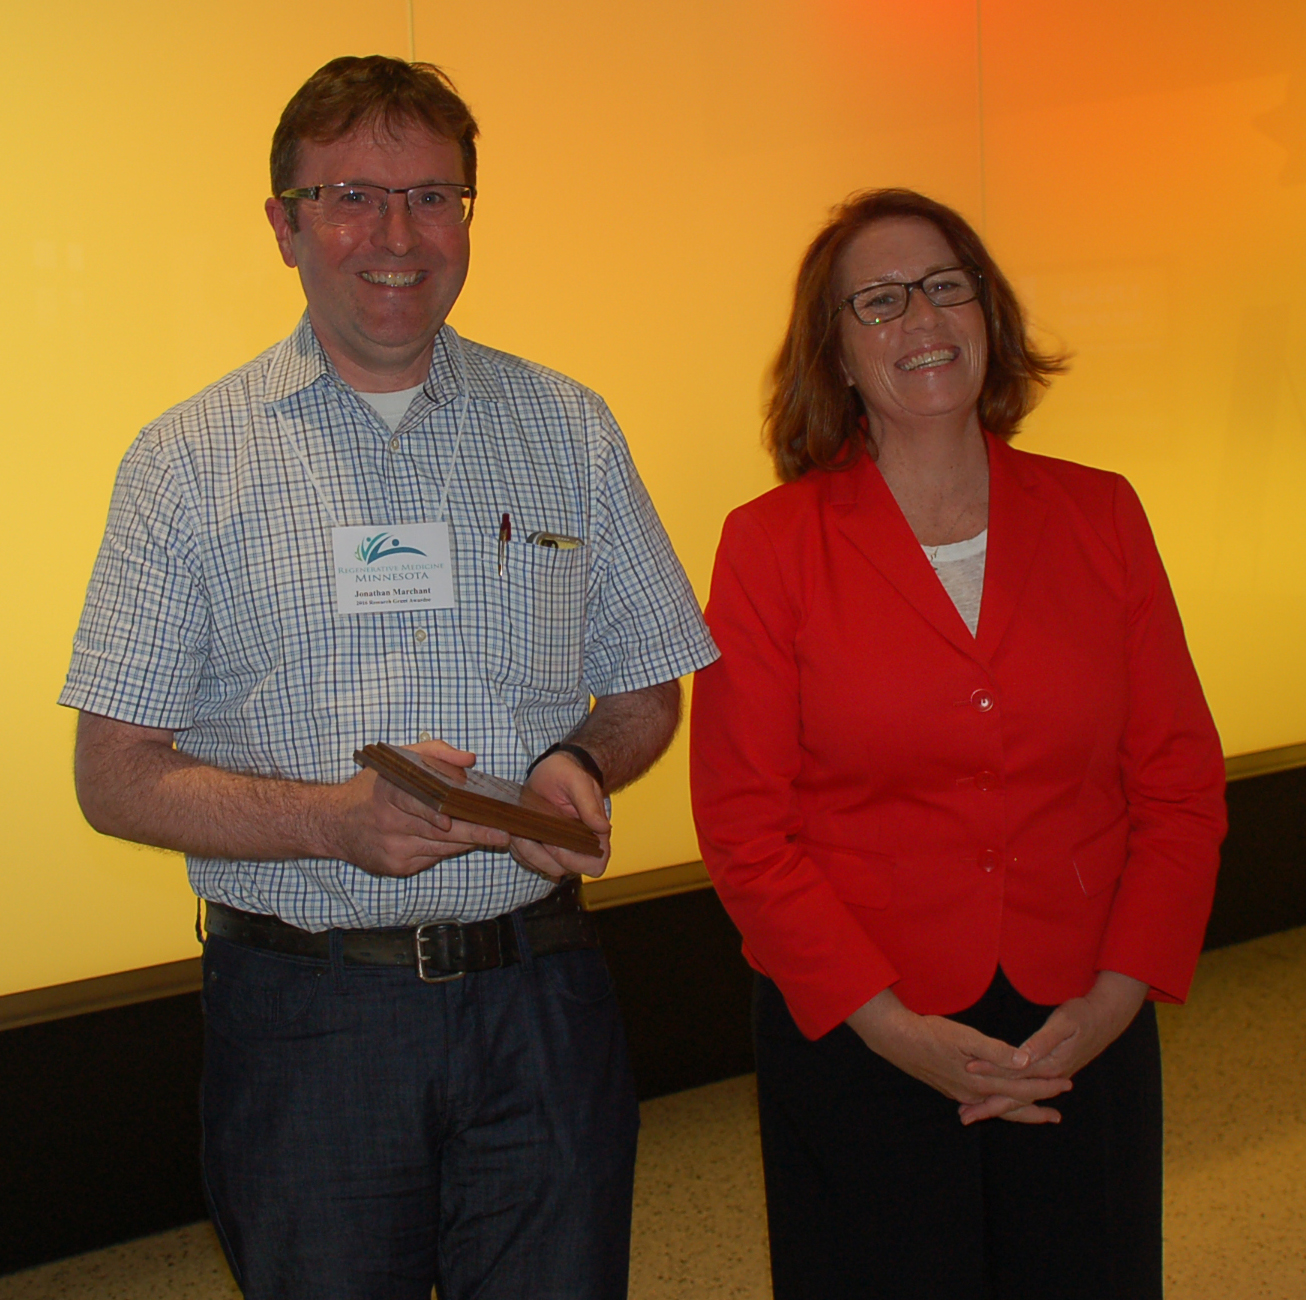 Dr. Jonathan Marchant, seen here with Rep. Erin Murphy, received a Discovery Science Research grant to study a therapy to reverse cell damage caused by Parkinson's disease.